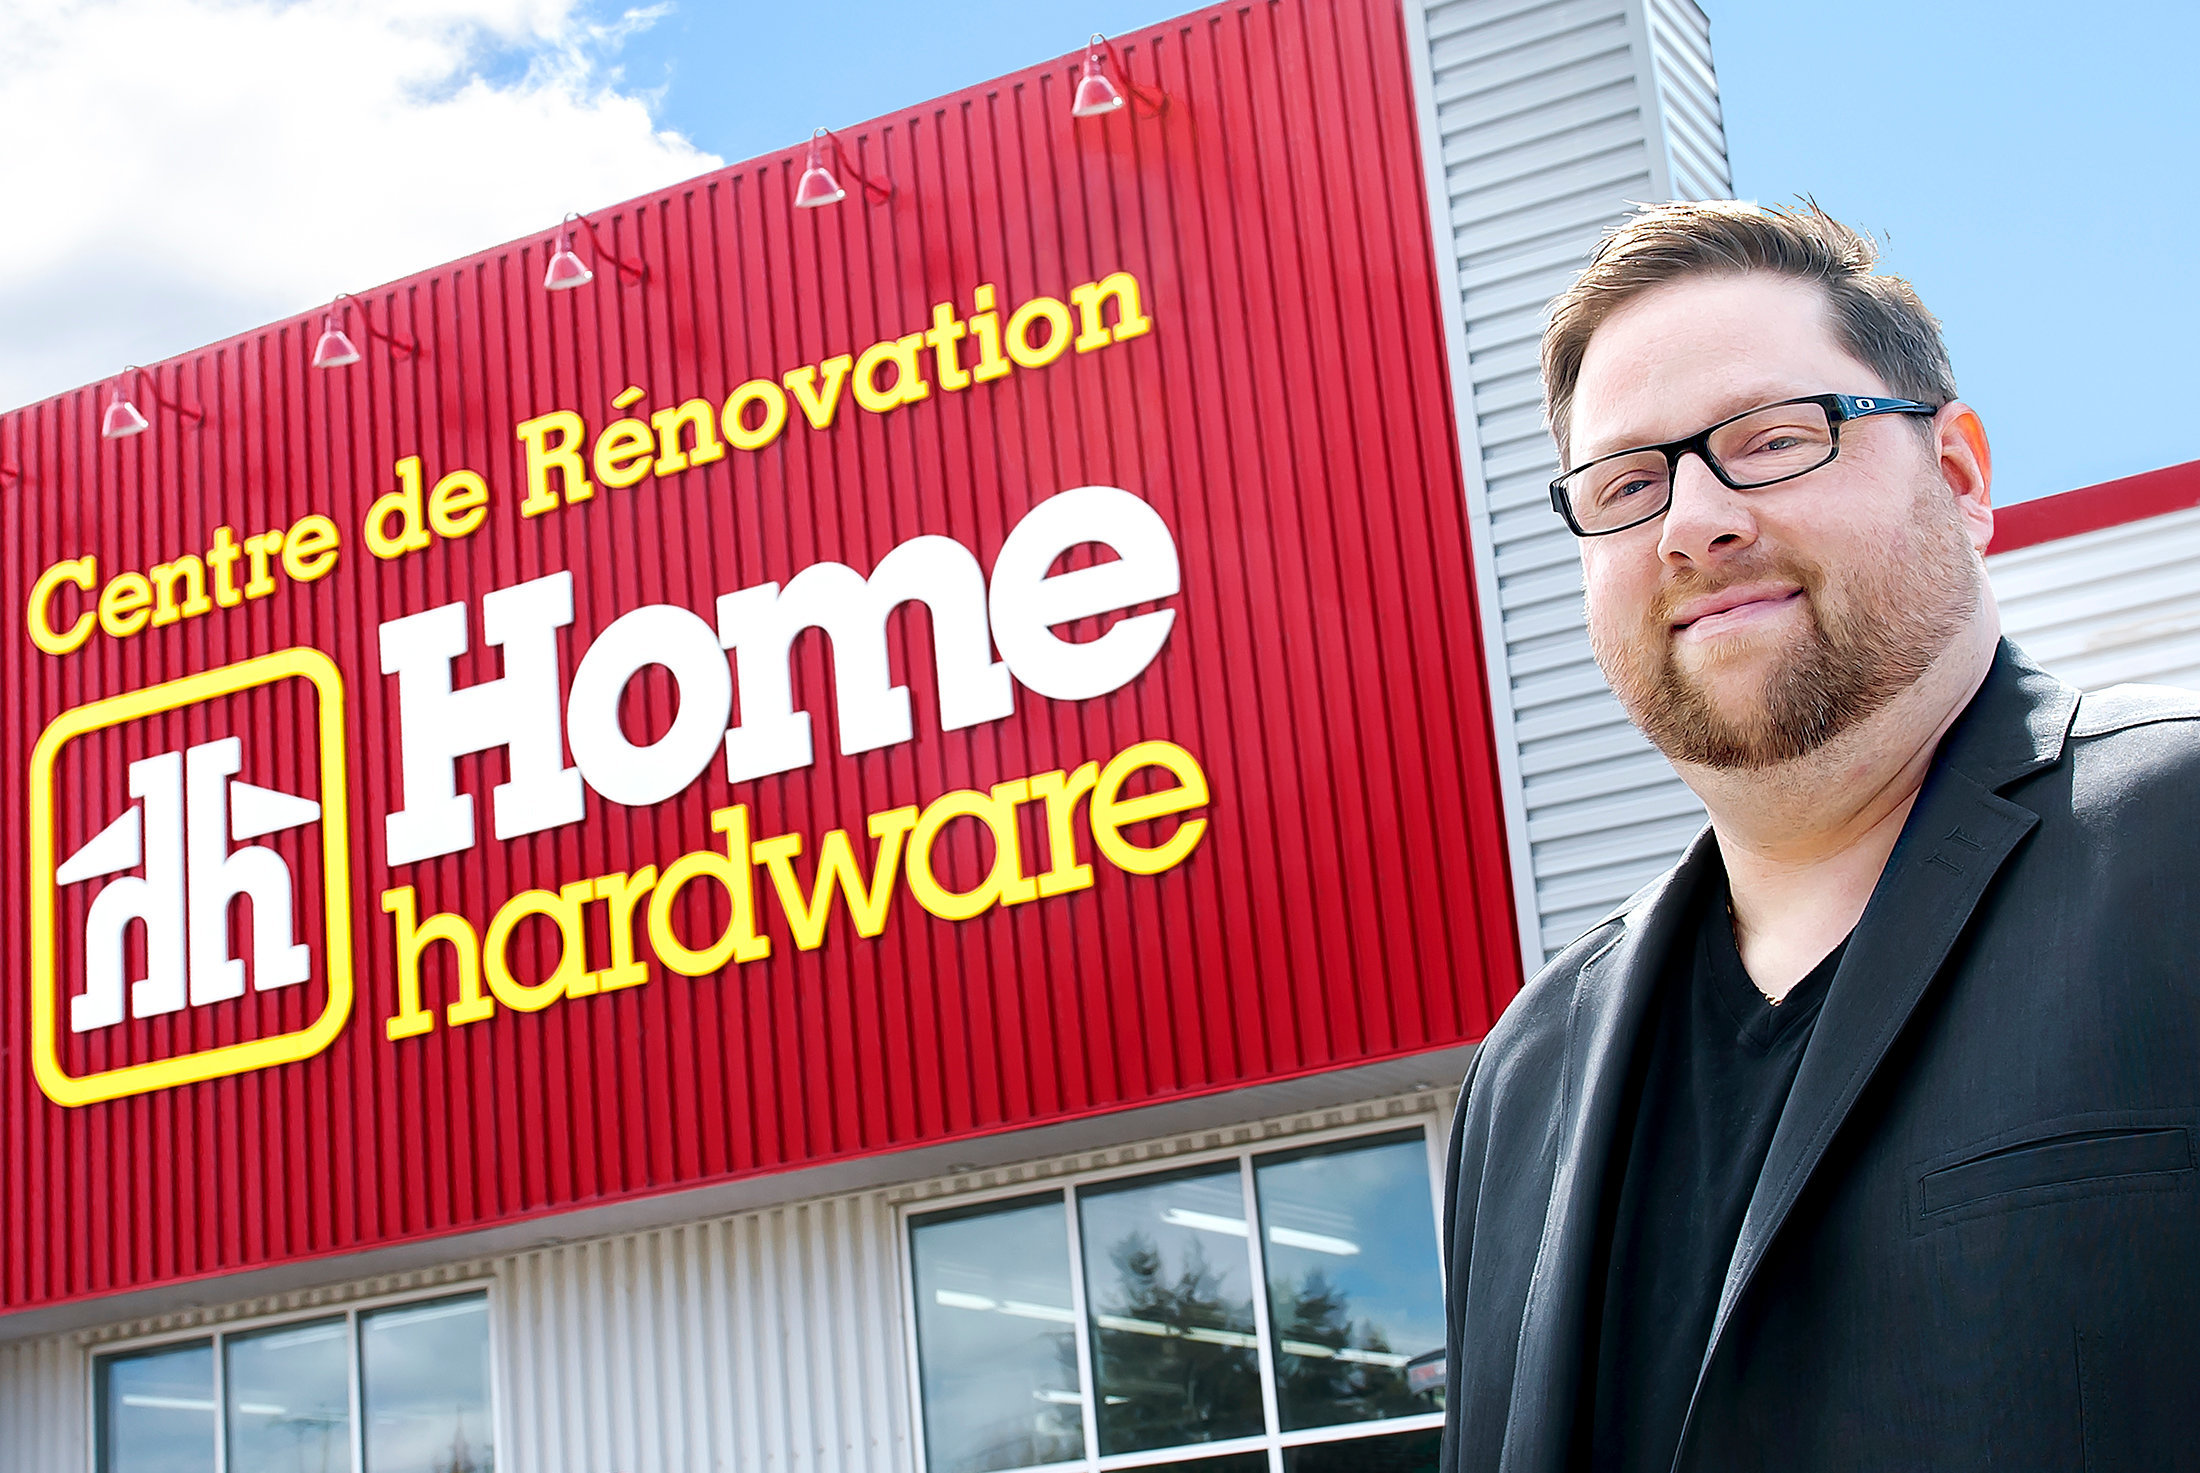 home hardware 2200 pix wide.jpg